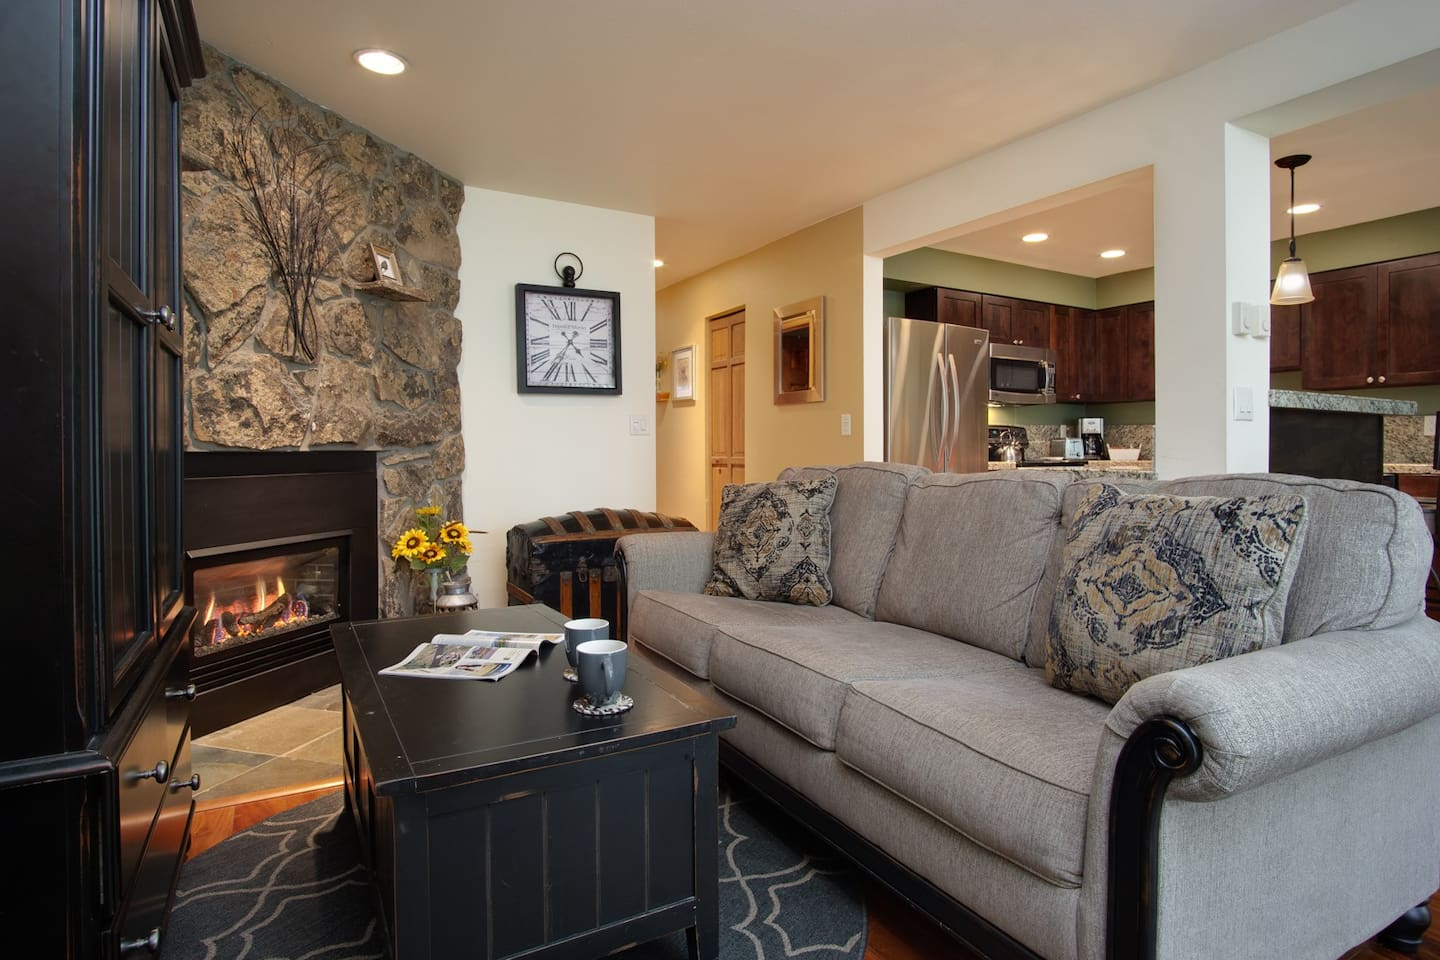 Cozy, comfortable condo located just 1/2 mile from Steamboat Ski resort. Everything you'll need for your getaway.